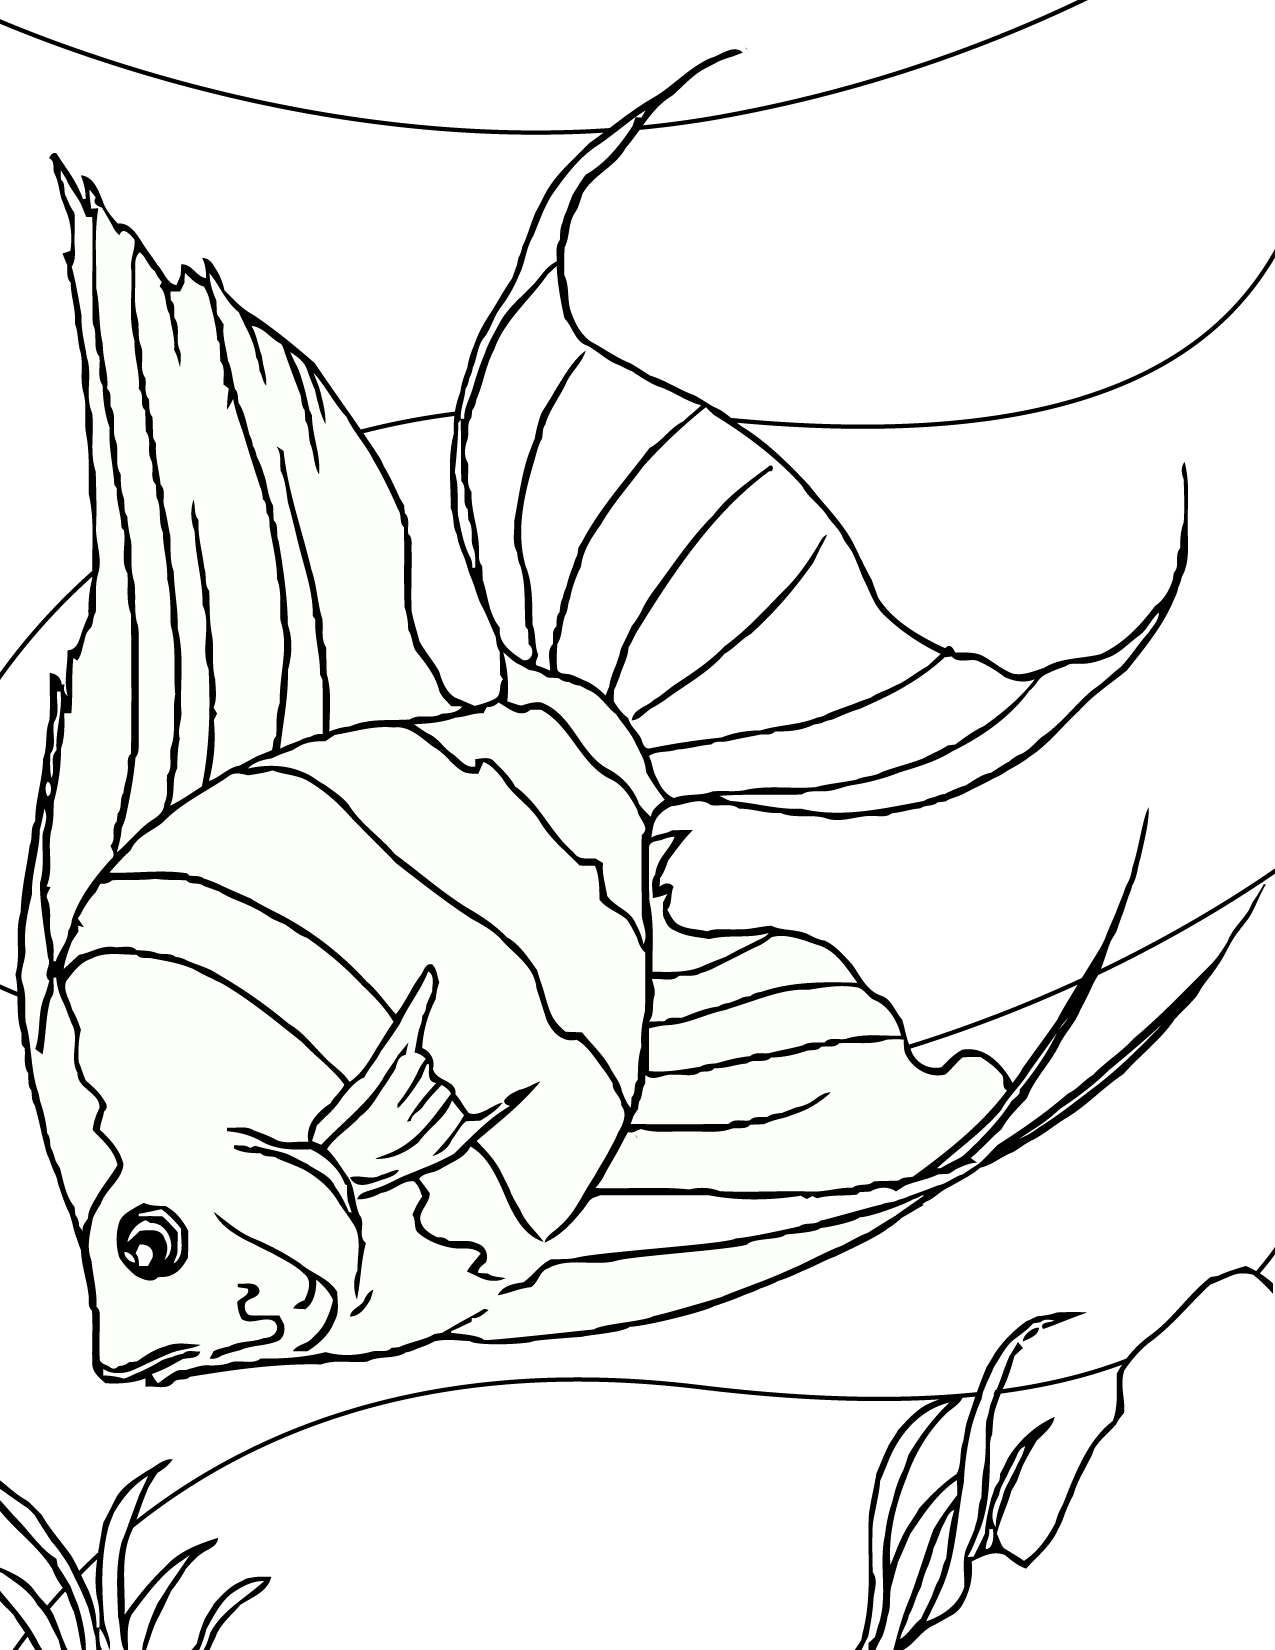 fish coloring pages free - photo#19